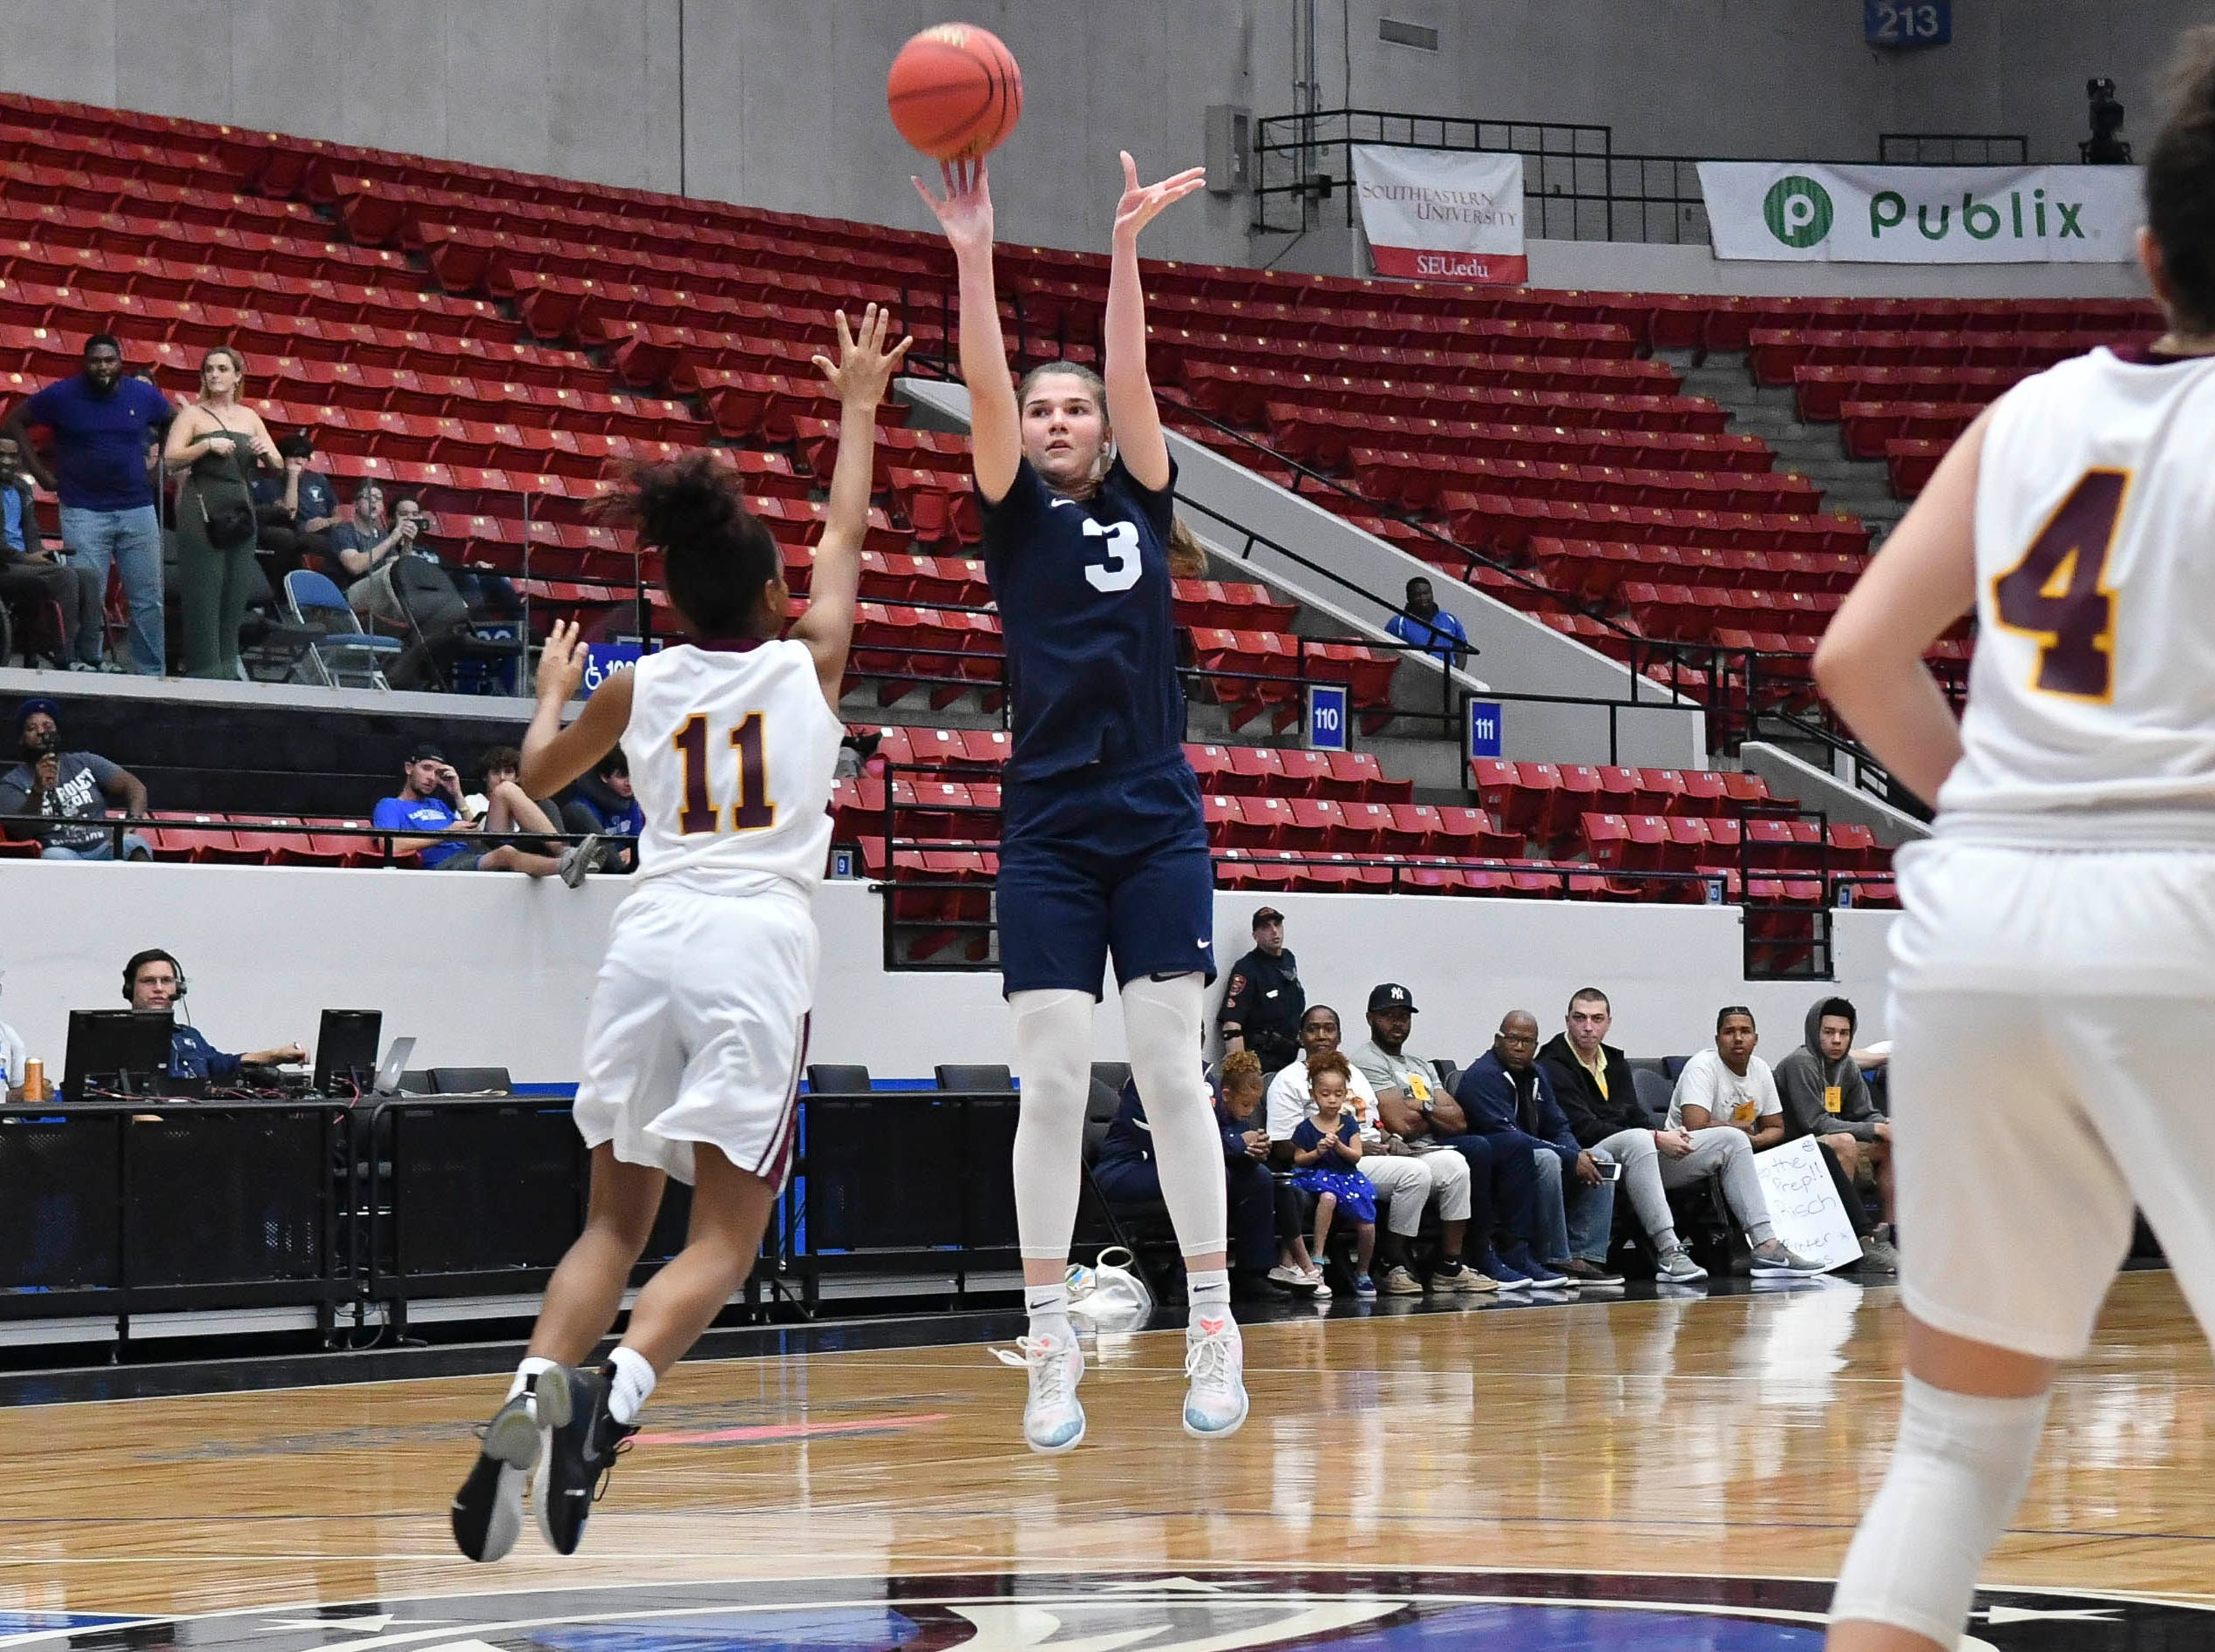 Antonia Alexe of Florida Prep launches a three pointer over Sierra Bell of Bayshore Christian during Tuesday's Class 2A state championship game.